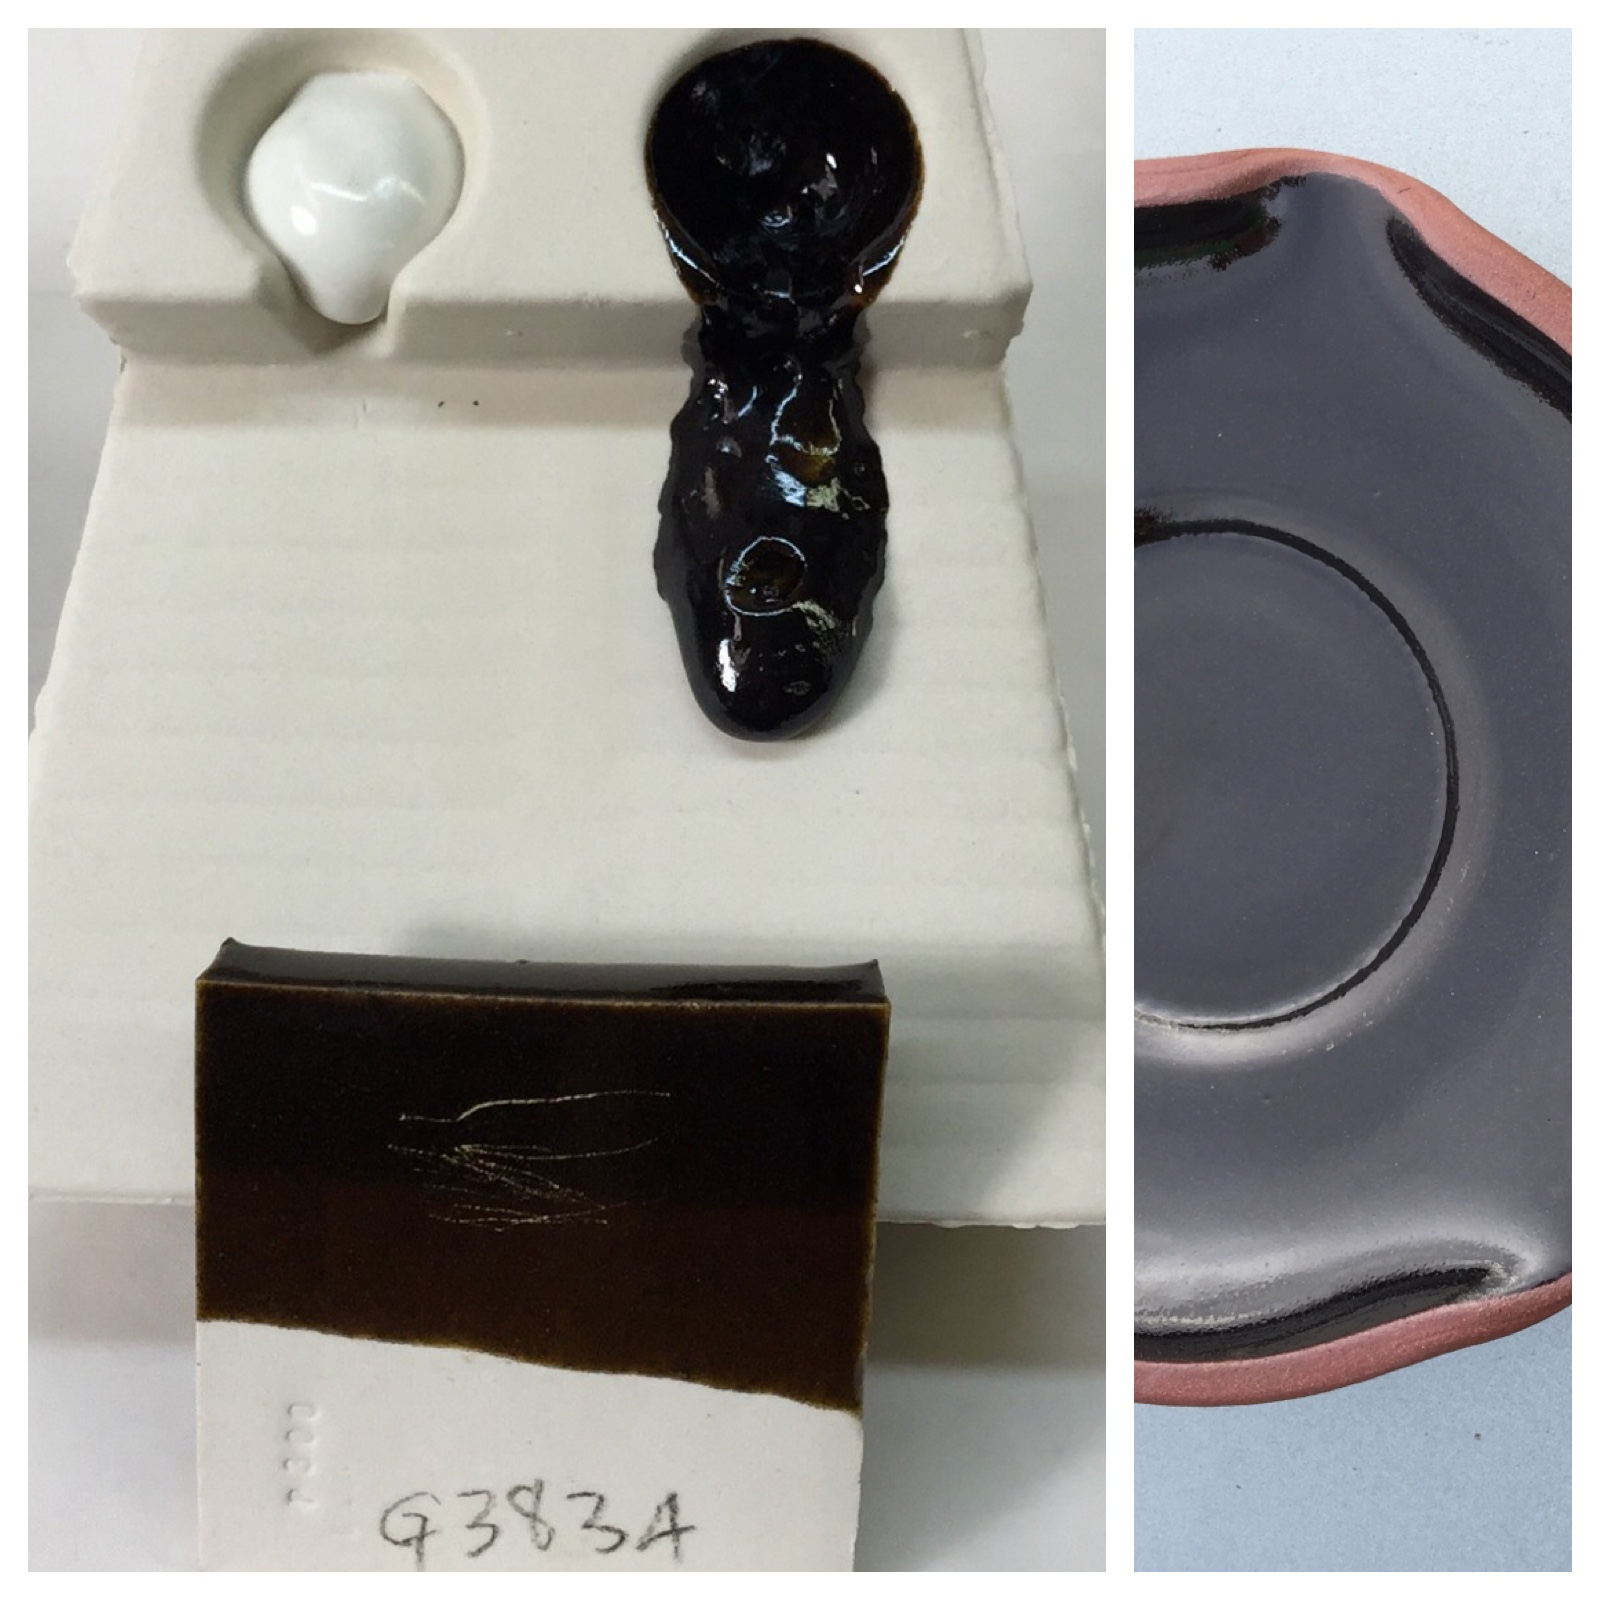 Can a cone 6 functional glaze having only whiting and feldspar melt enough?